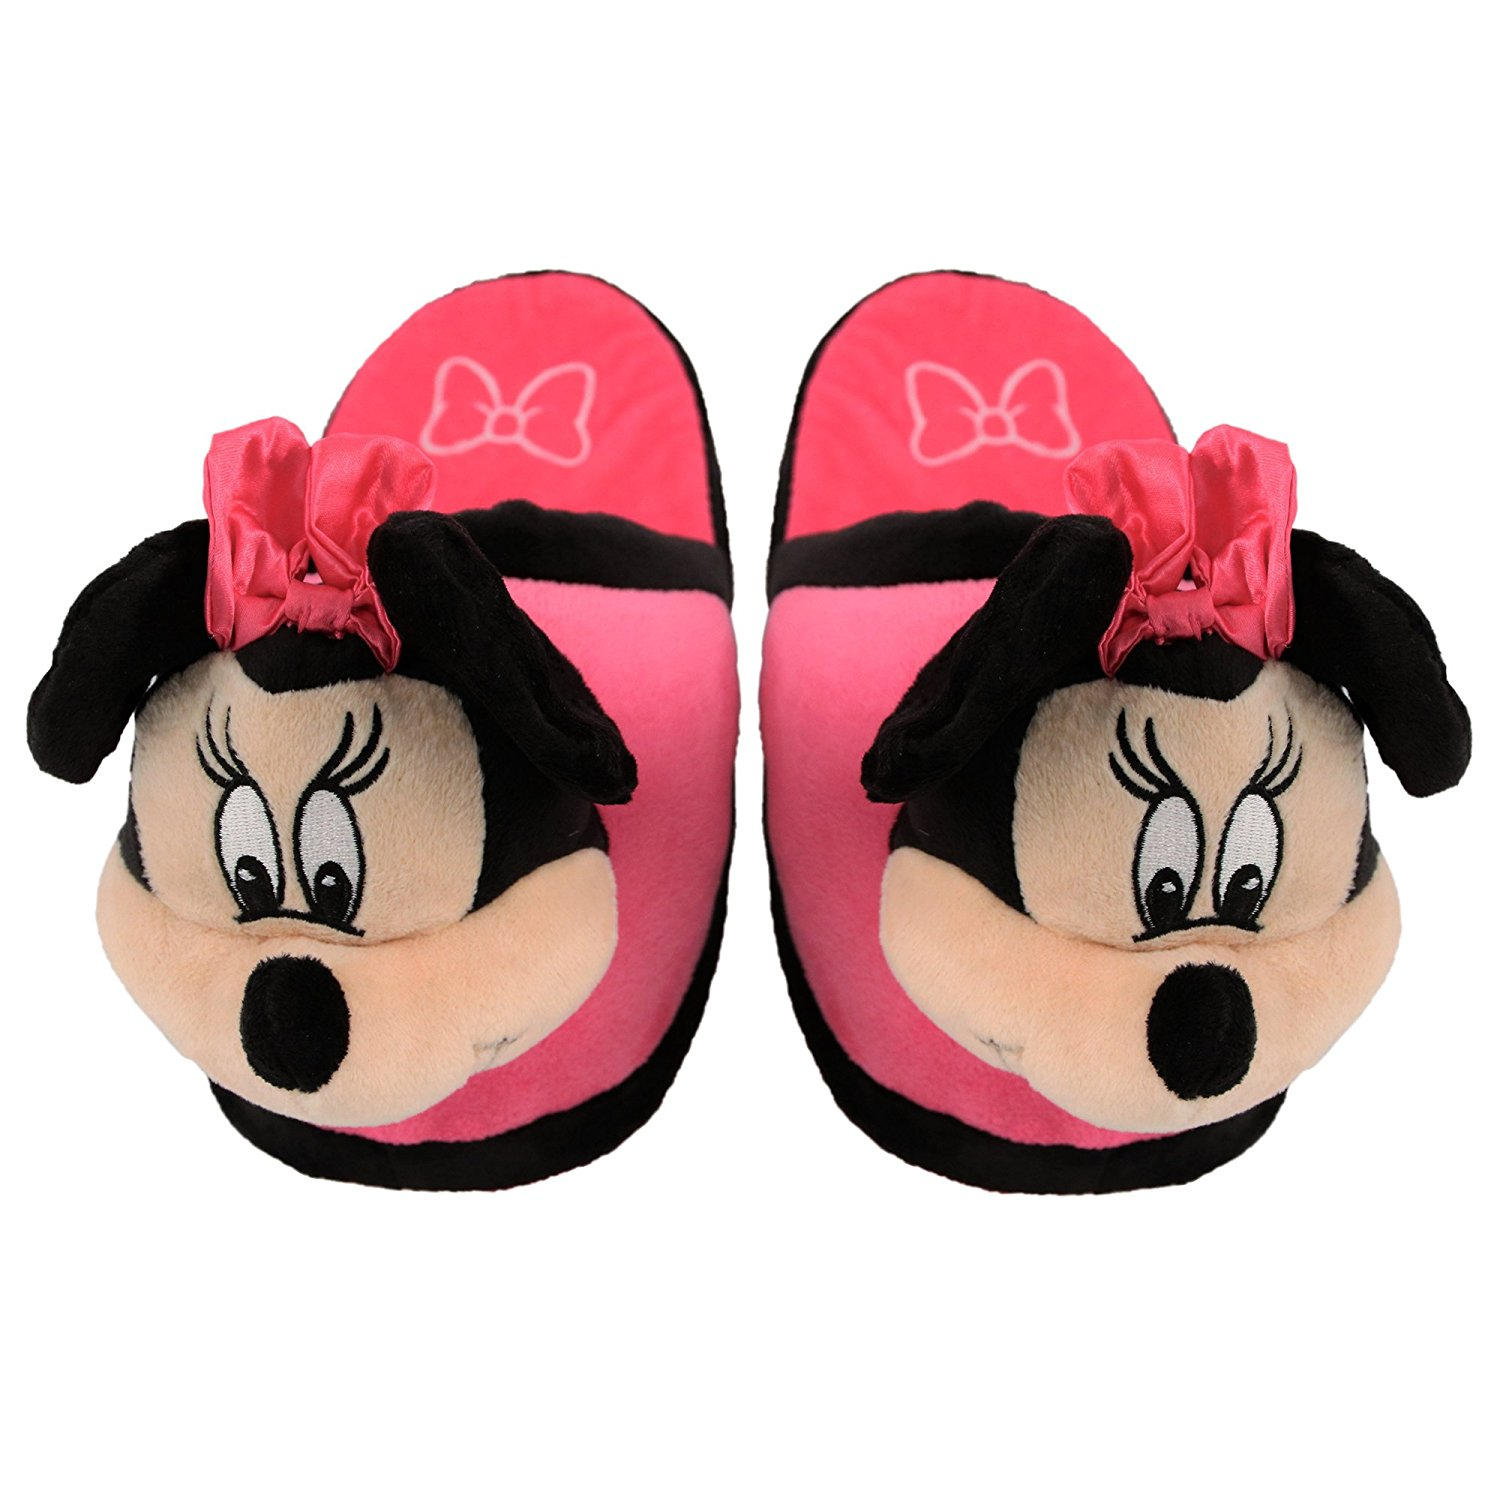 7a9dbbfaf2d Get Quotations · Stompeez Animated Minnie Mouse Plush Slippers - Ultra Soft  and Fuzzy - Ears Flap as You